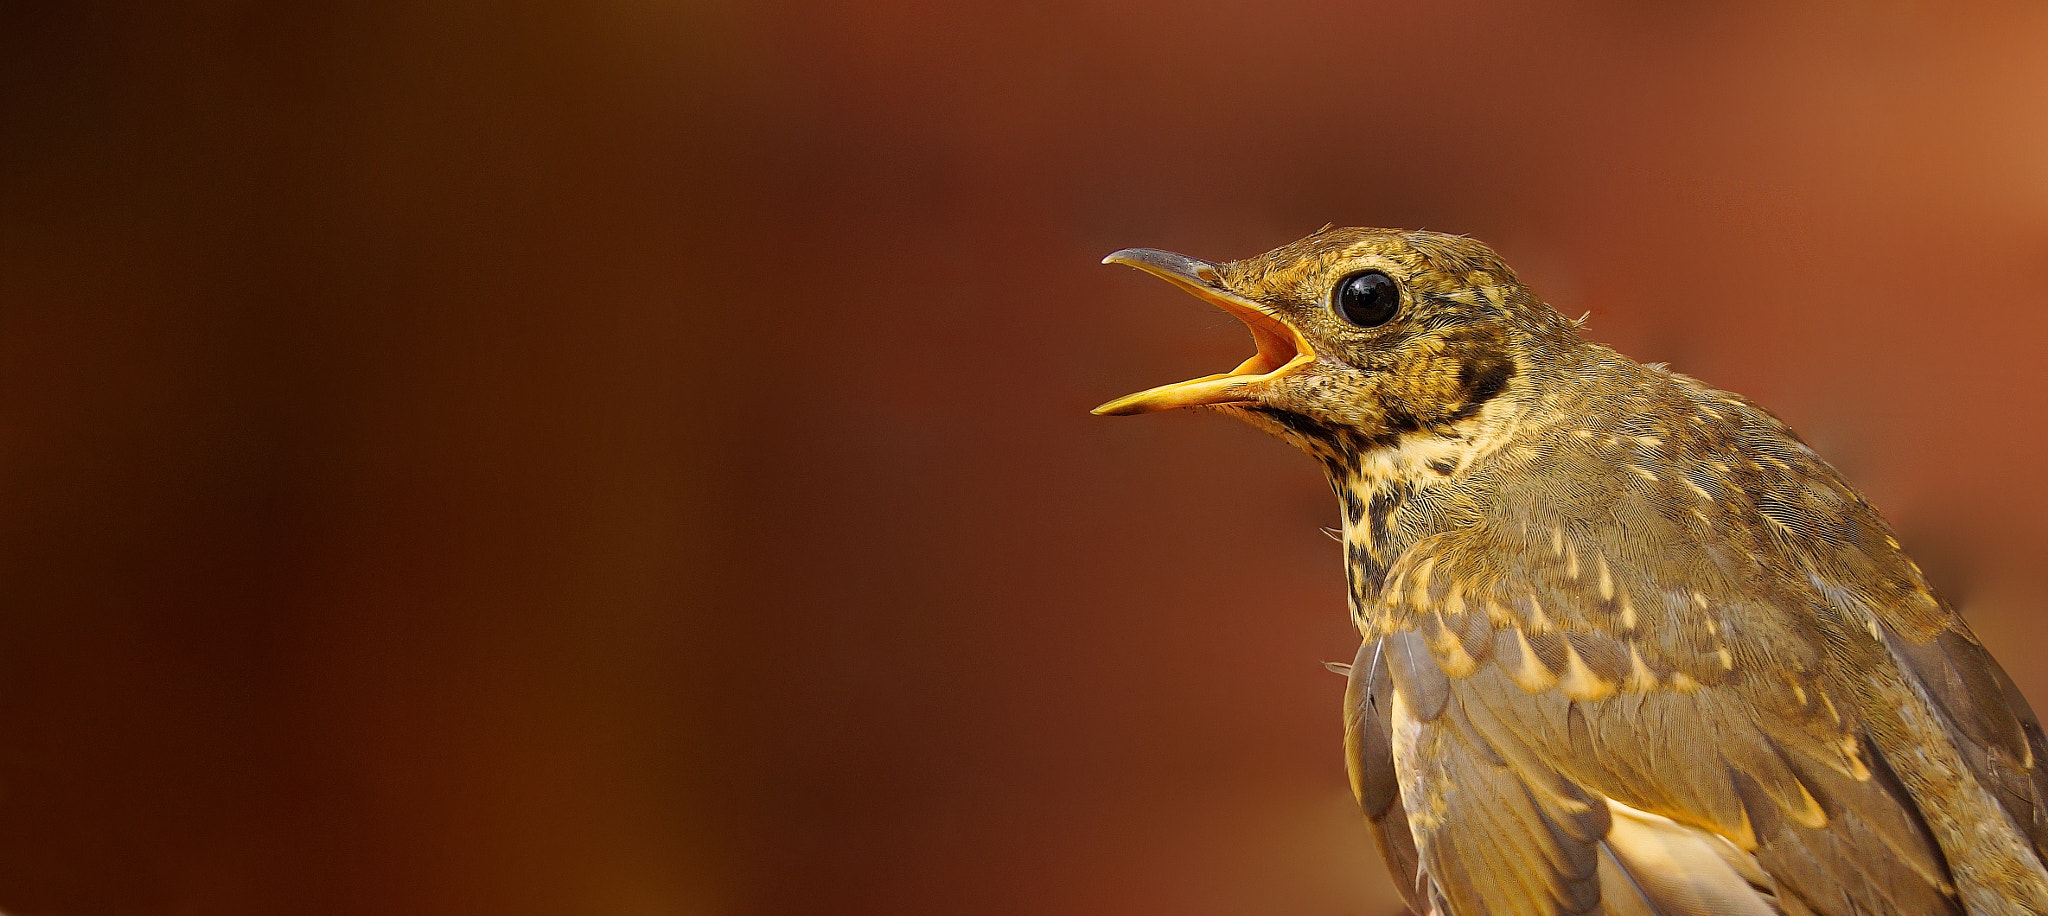 Photograph Song Thrush by Alex Berryman on 500px